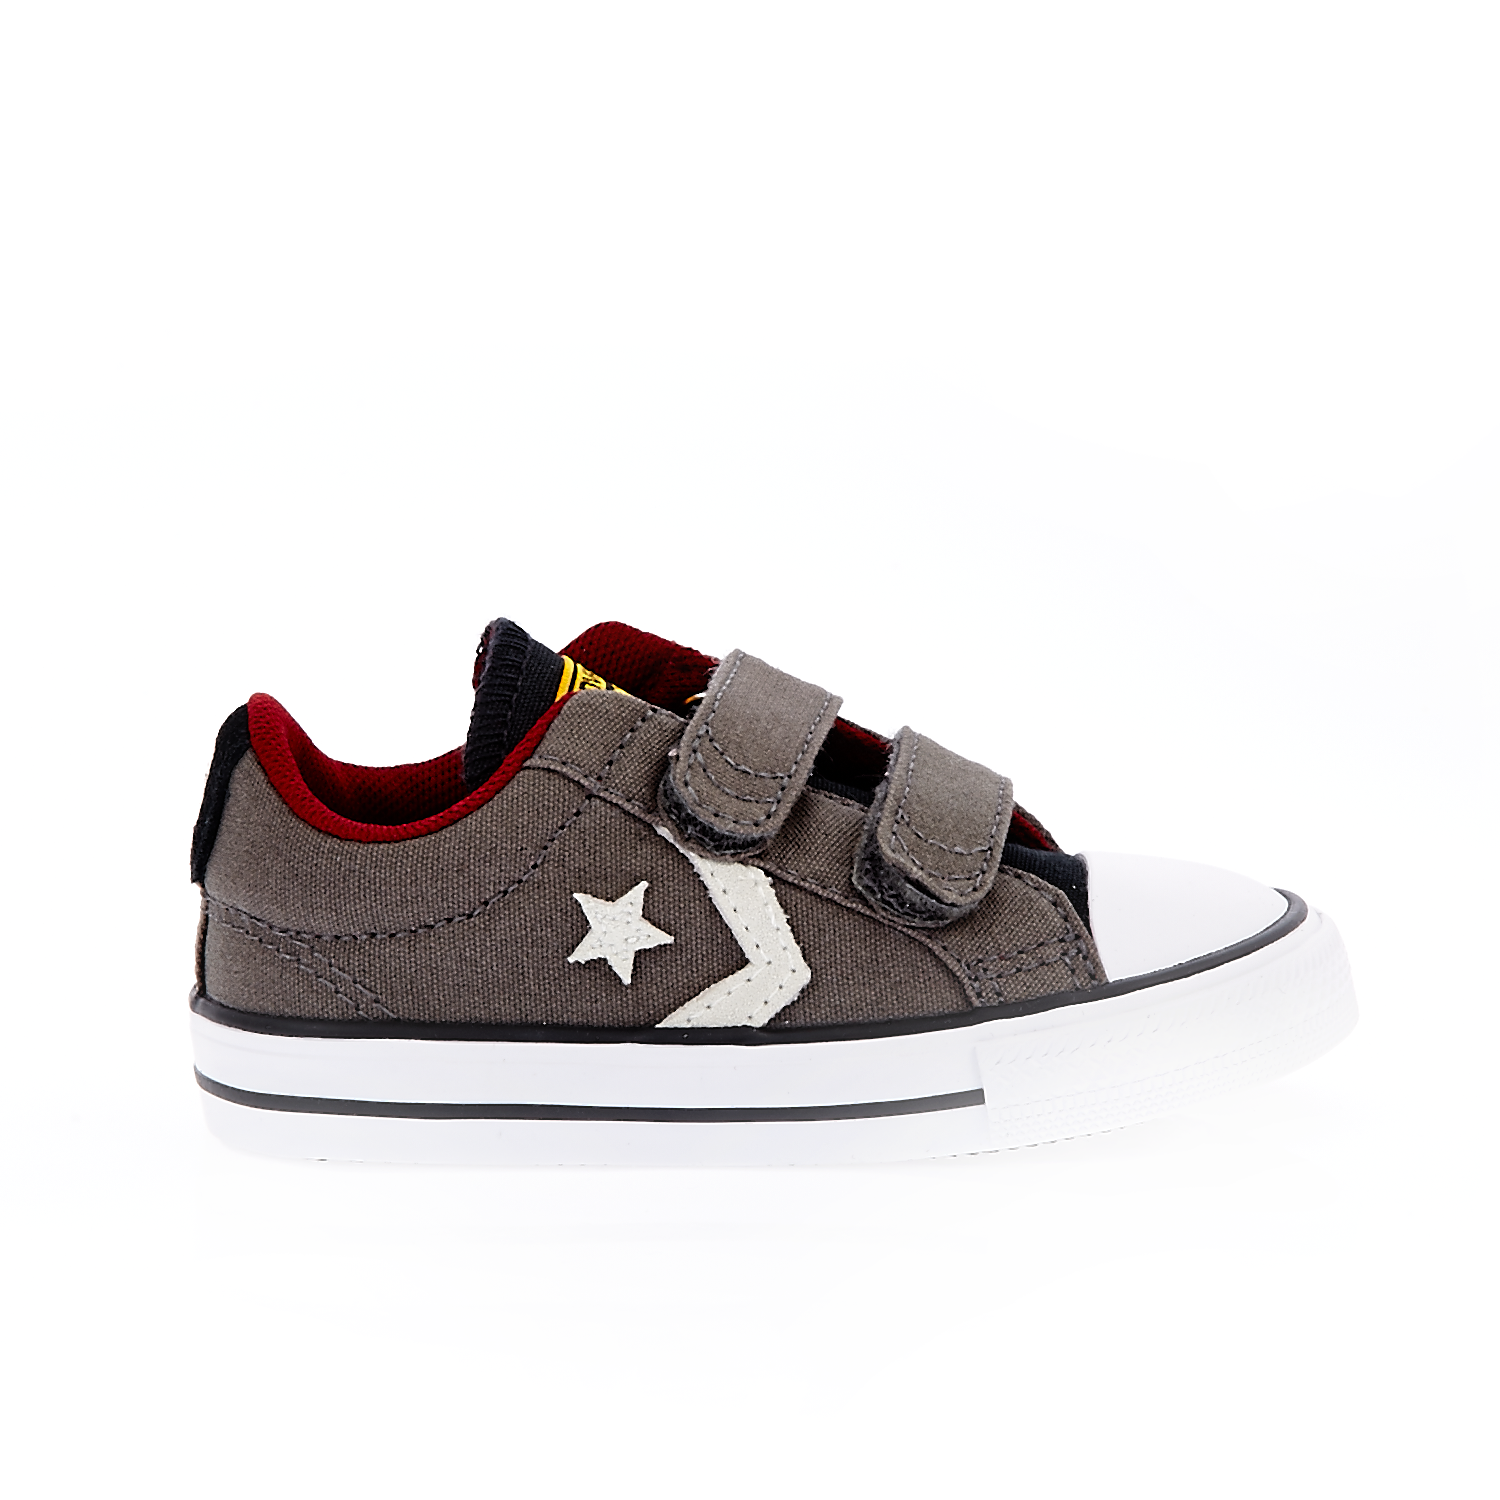 CONVERSE - Βρεφικά παπούτσια STAR PLAYER 2V OX καφέ παιδικά baby παπούτσια sneakers